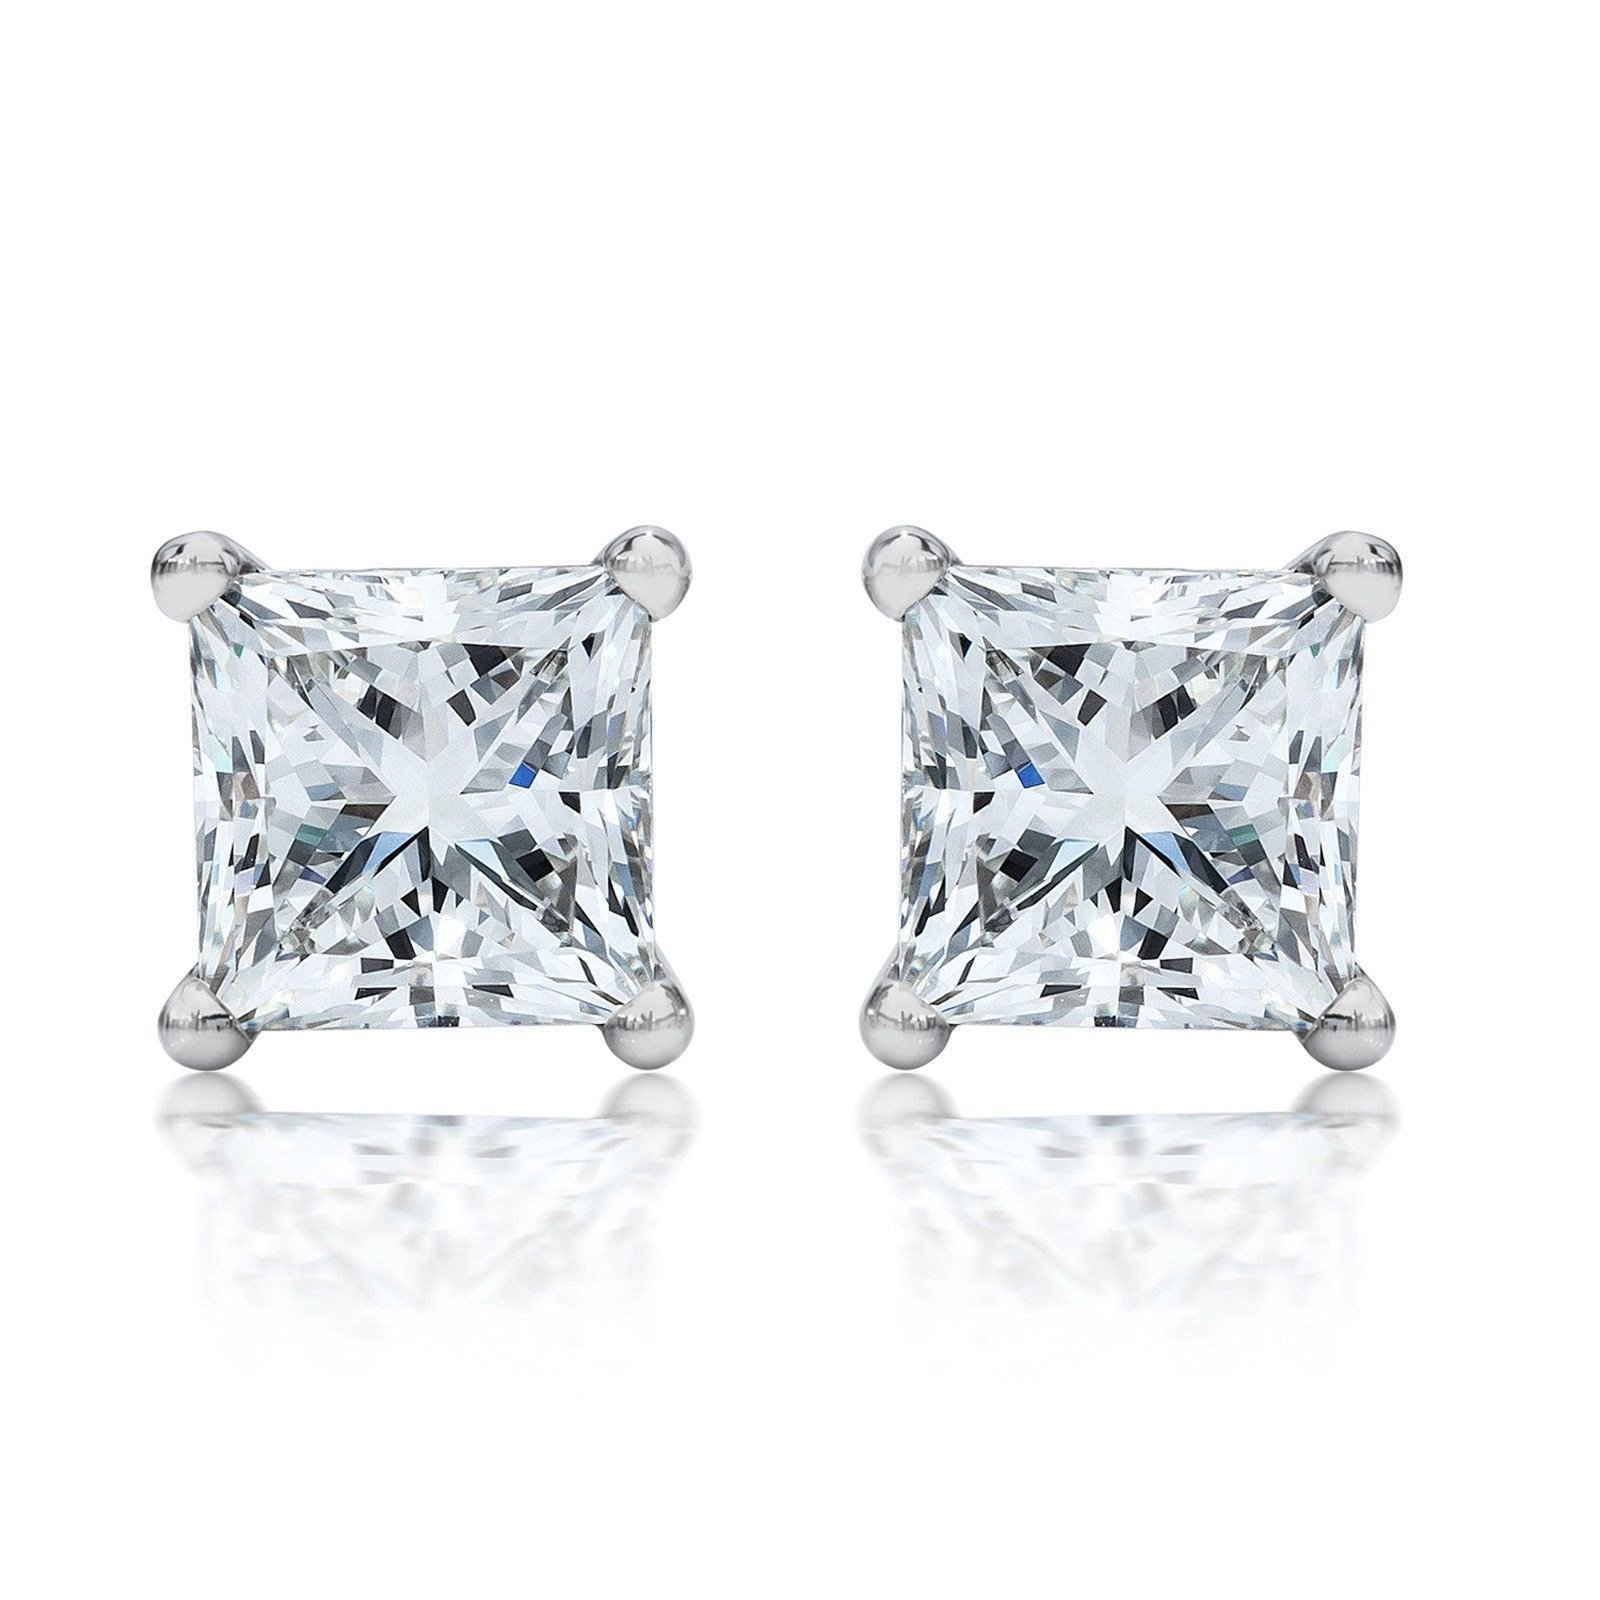 4.0 ctw Princess Brilliant Cut Simulated Diamond CZ Solitaire Stud Earrings in 14k White Gold Screw Back by Clara Pucci (Image #9)